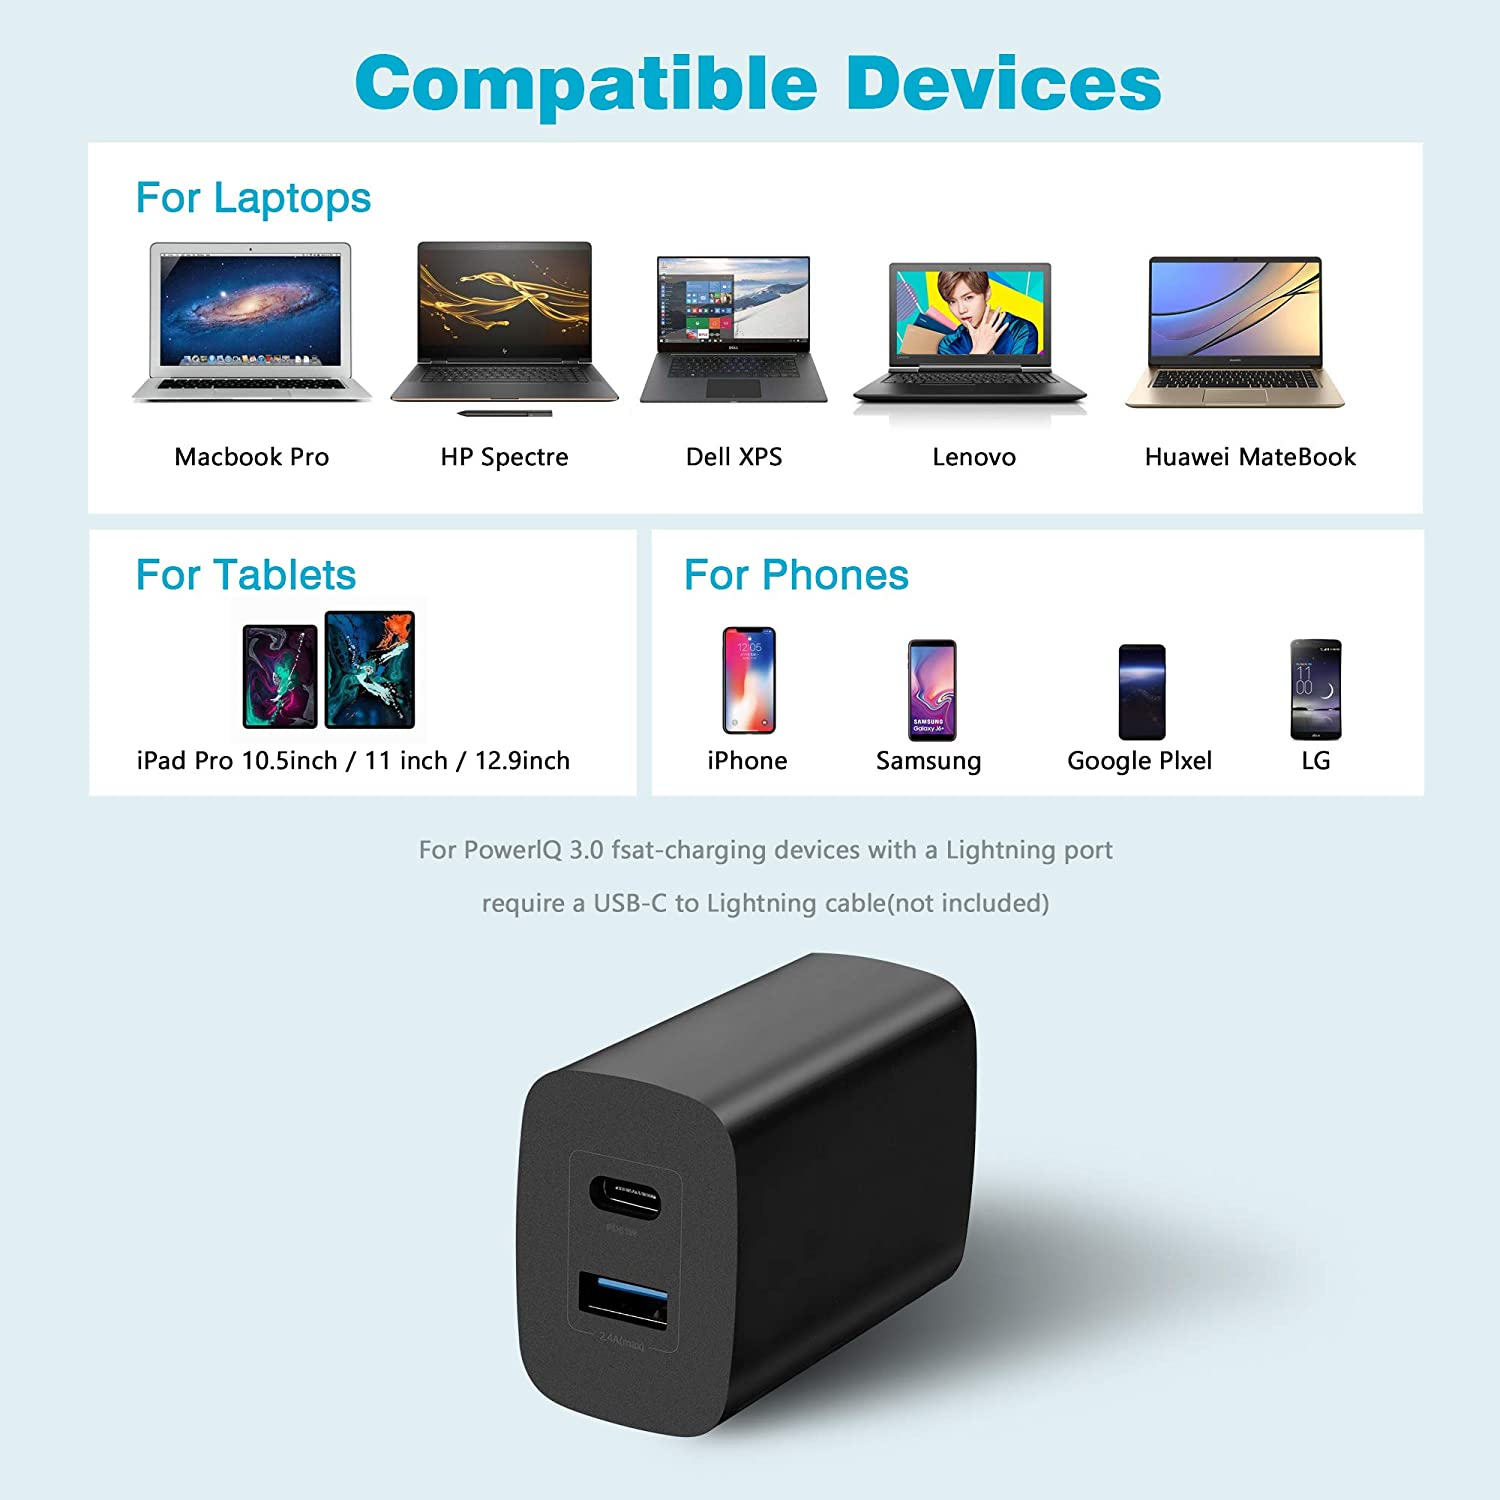 E EGOWAY 61W 2-Port USB C GaN Charger PD Power Adapter for iPhone 11 Pro USB C Laptops and More Galaxy